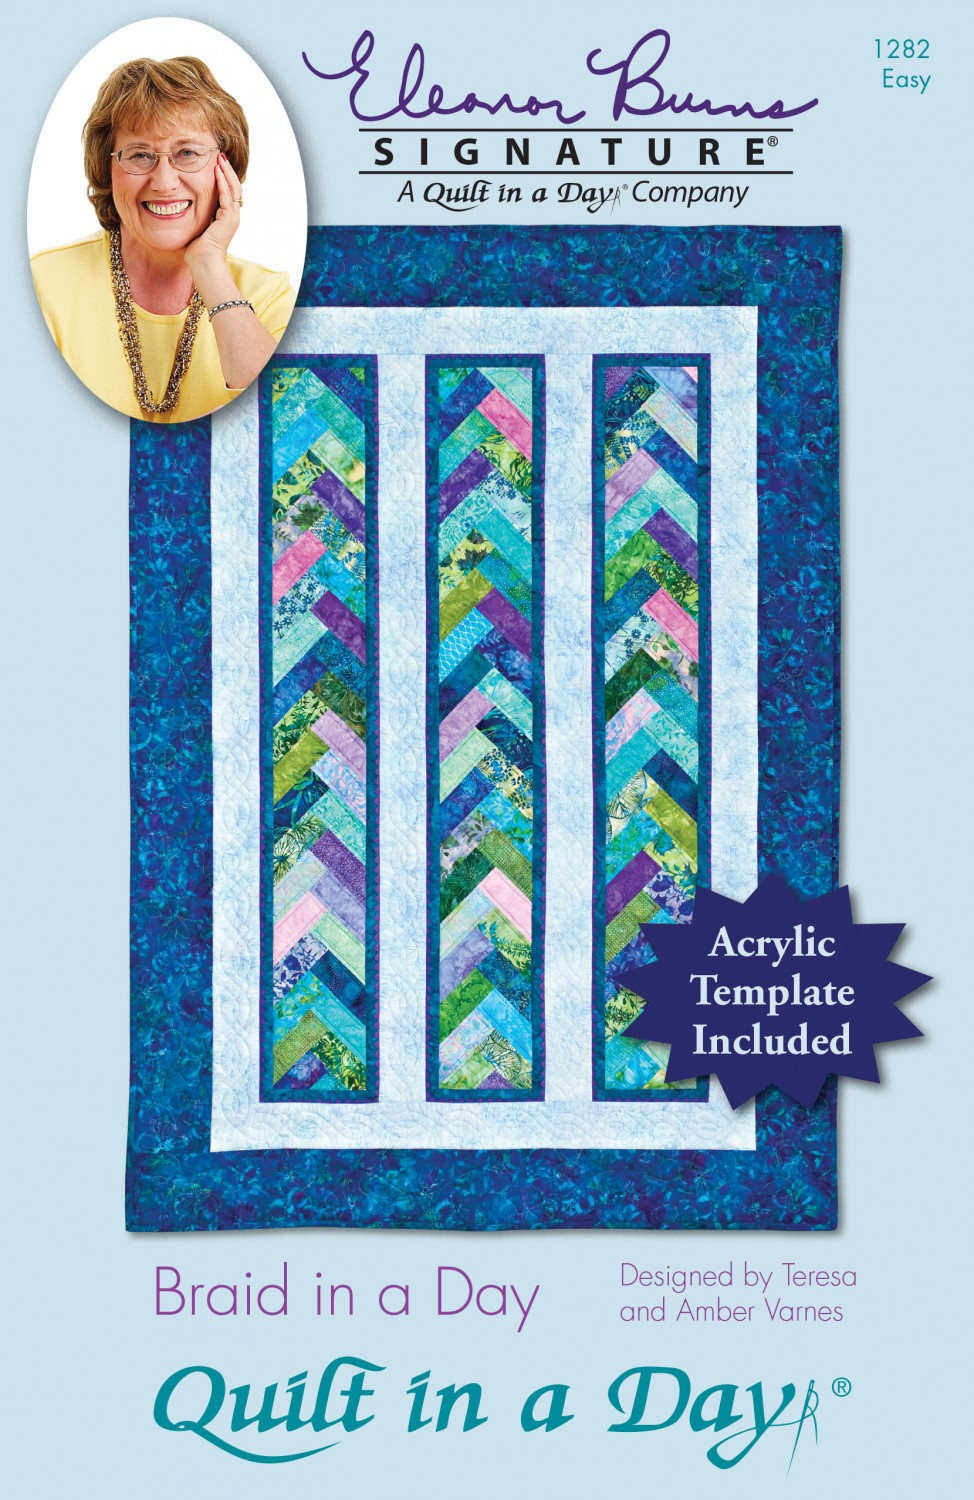 Braid in a Day Pattern by Eleanor Burns - Acrylic template included